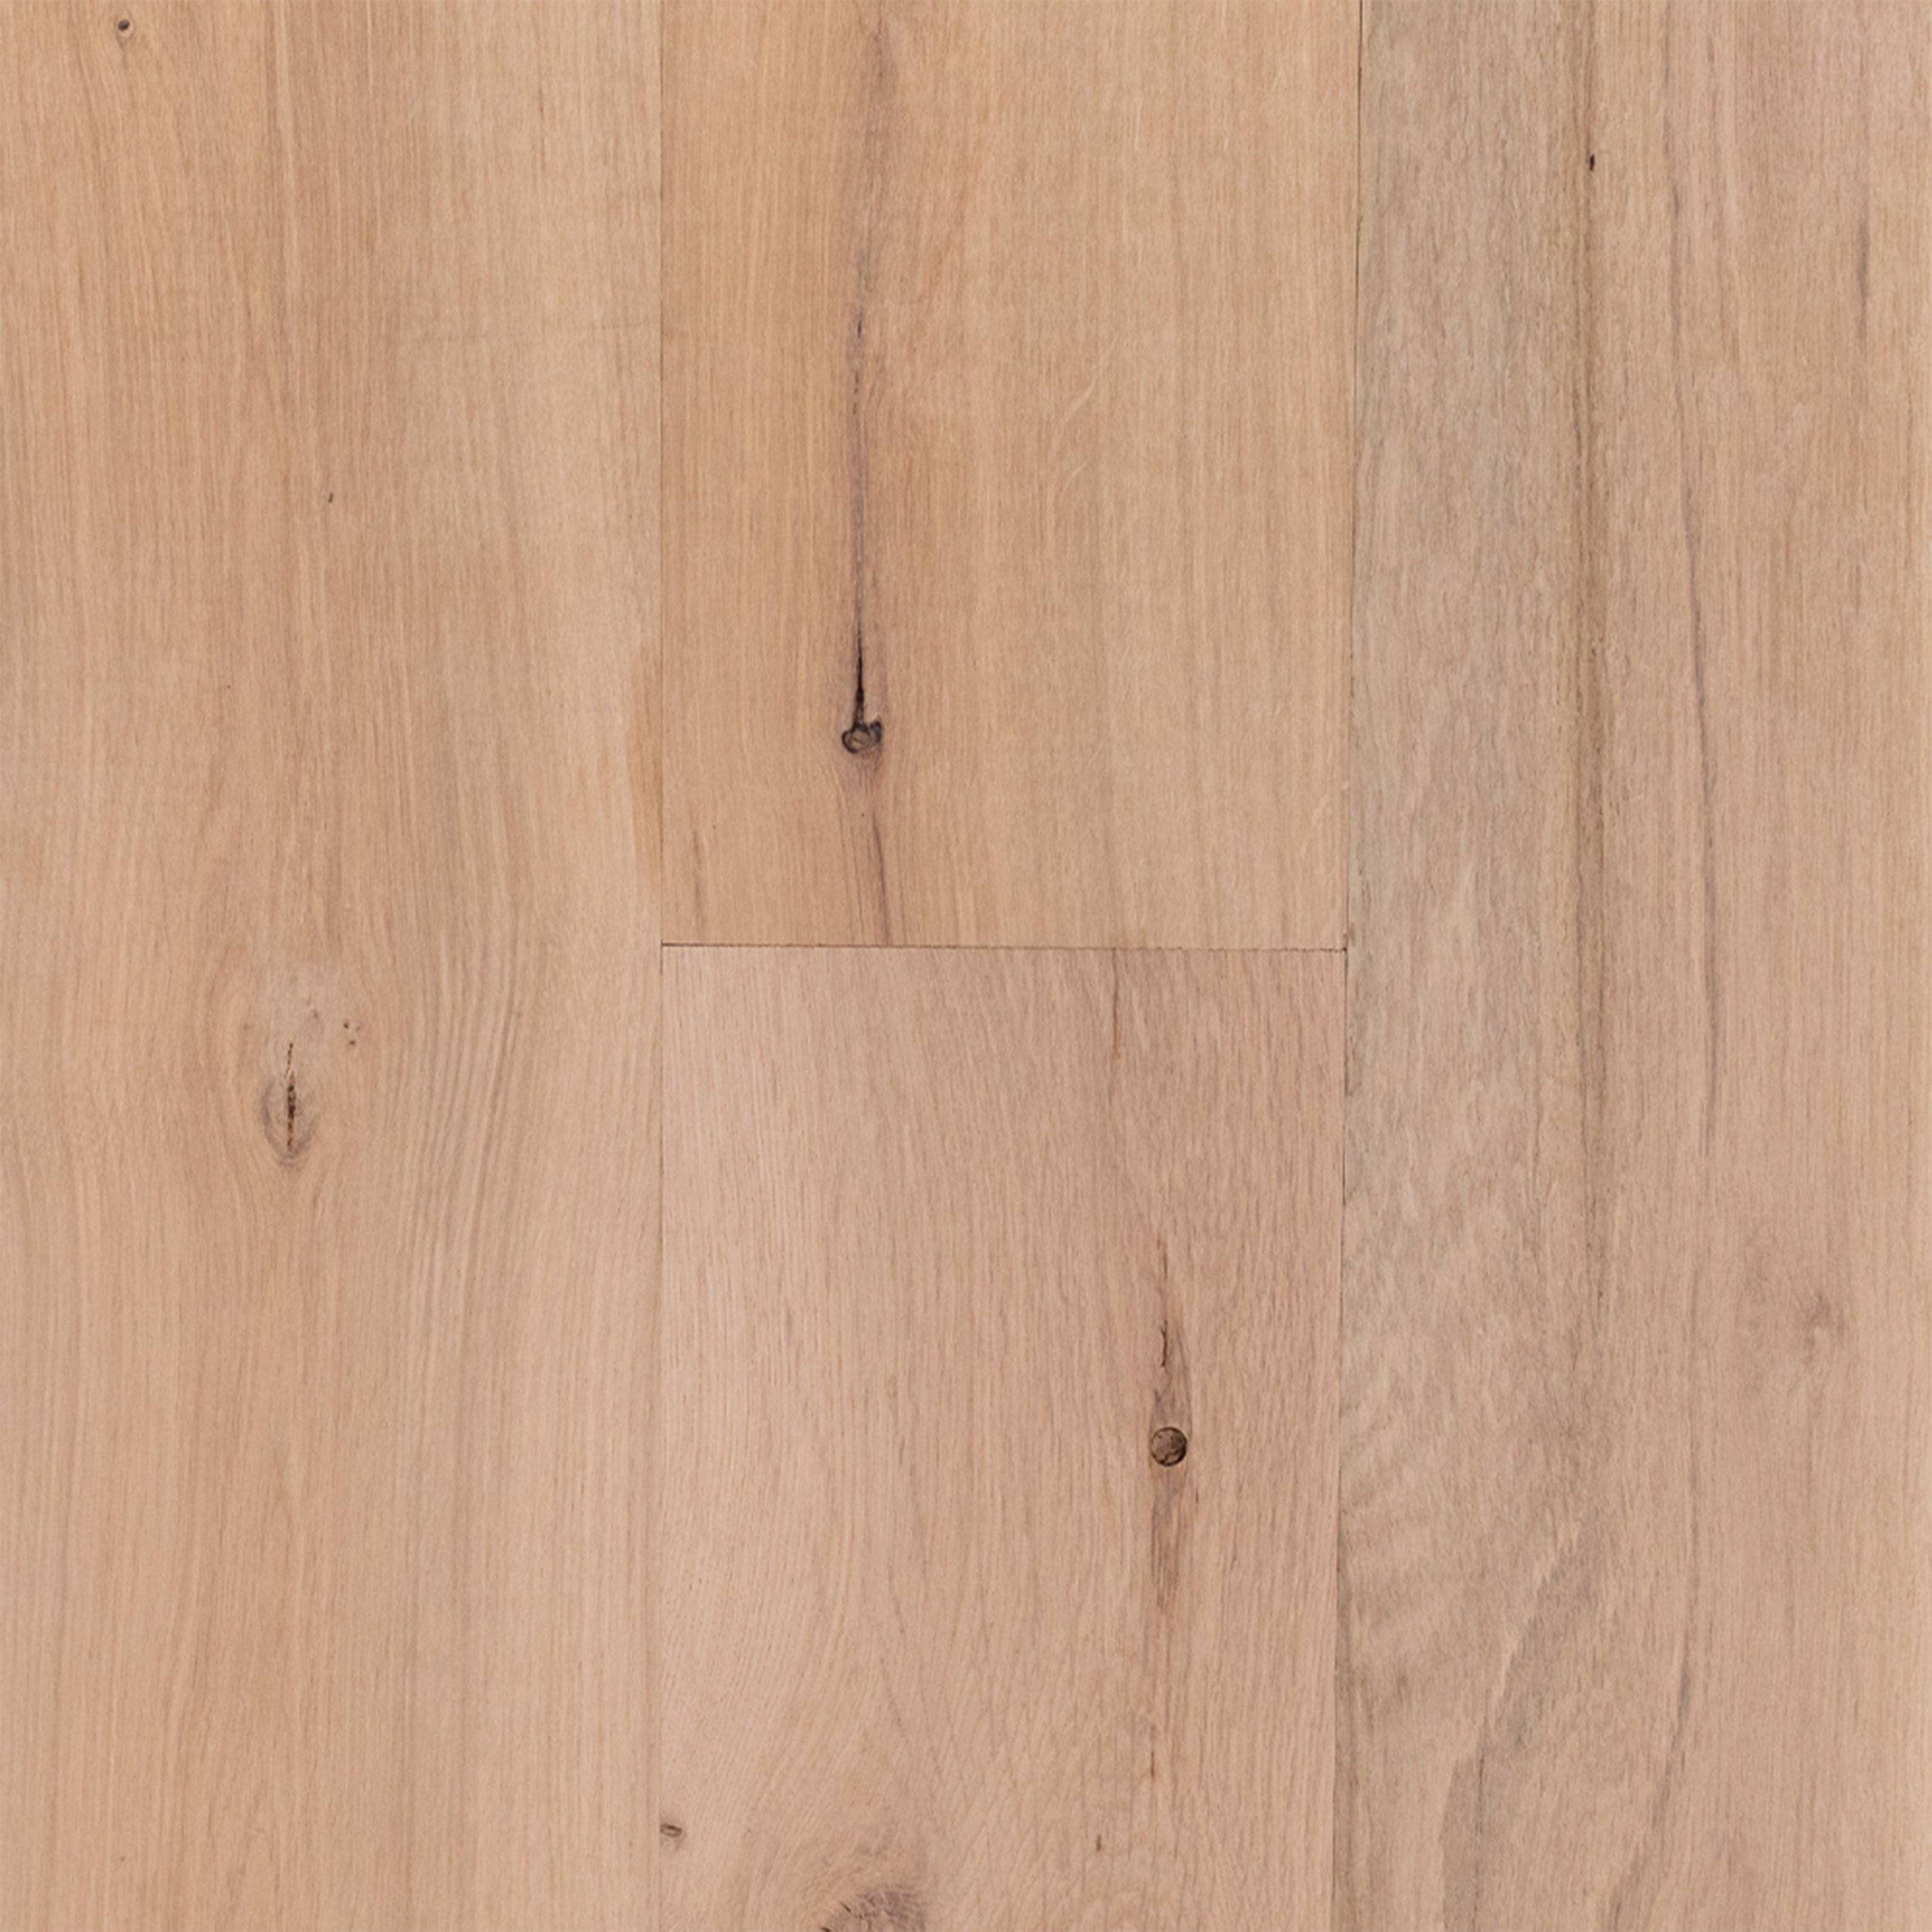 New! Unfinished White Oak Engineered Hardwood Character Grade